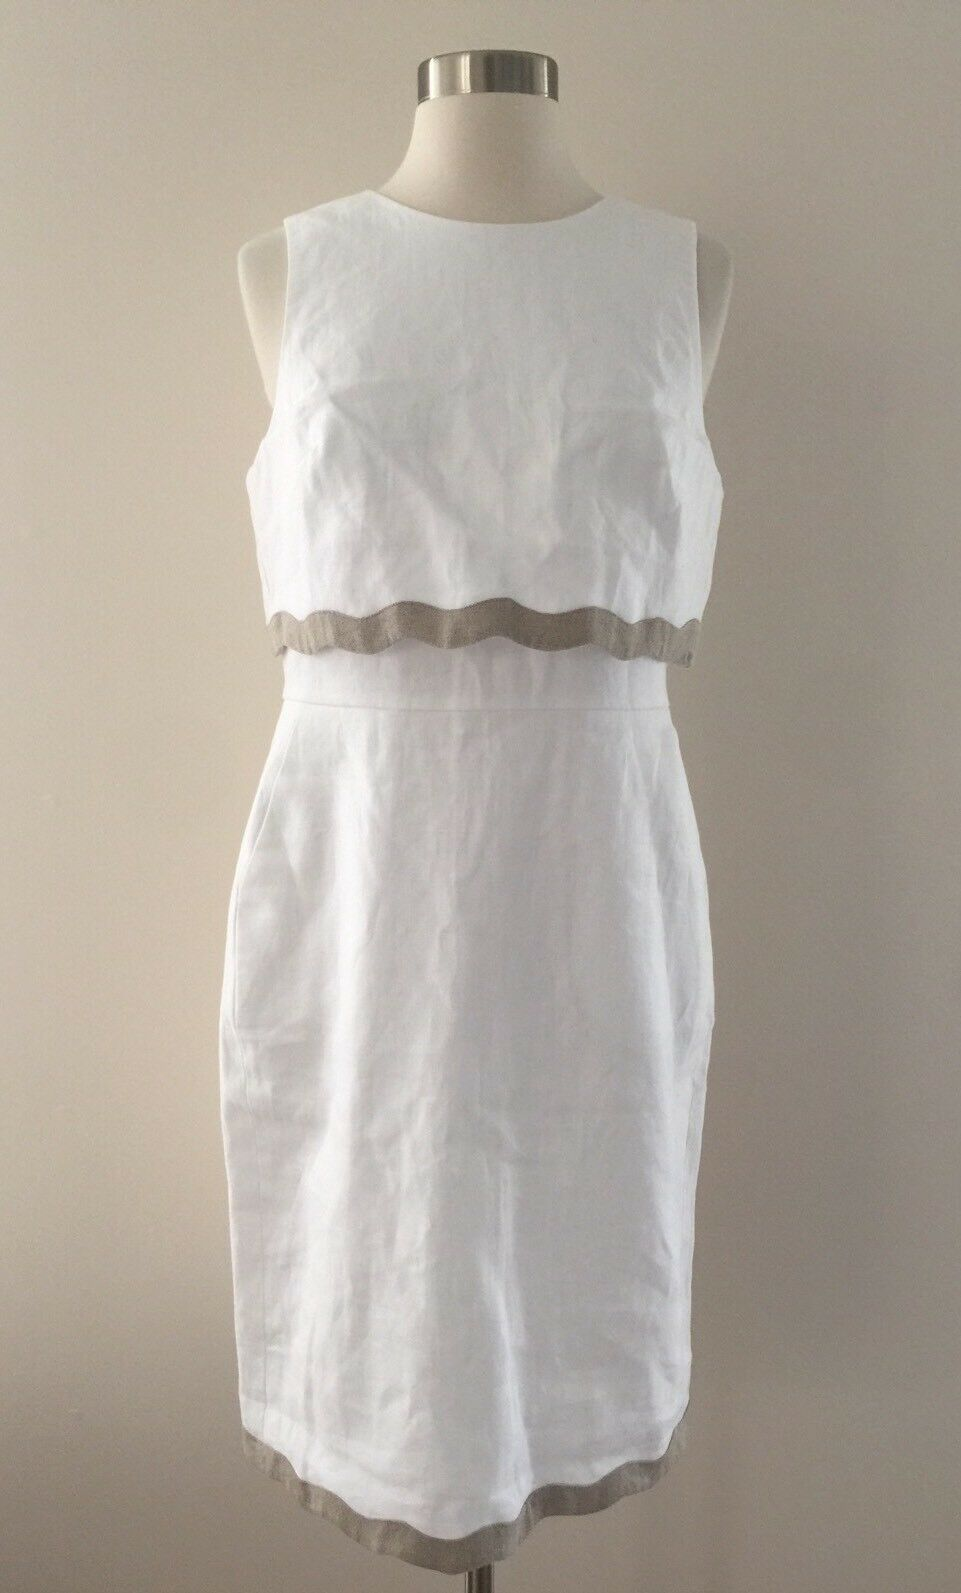 NEW JCrew Going Places Dress in Linen G4446  Weiß Natural Sz 6 SU'17